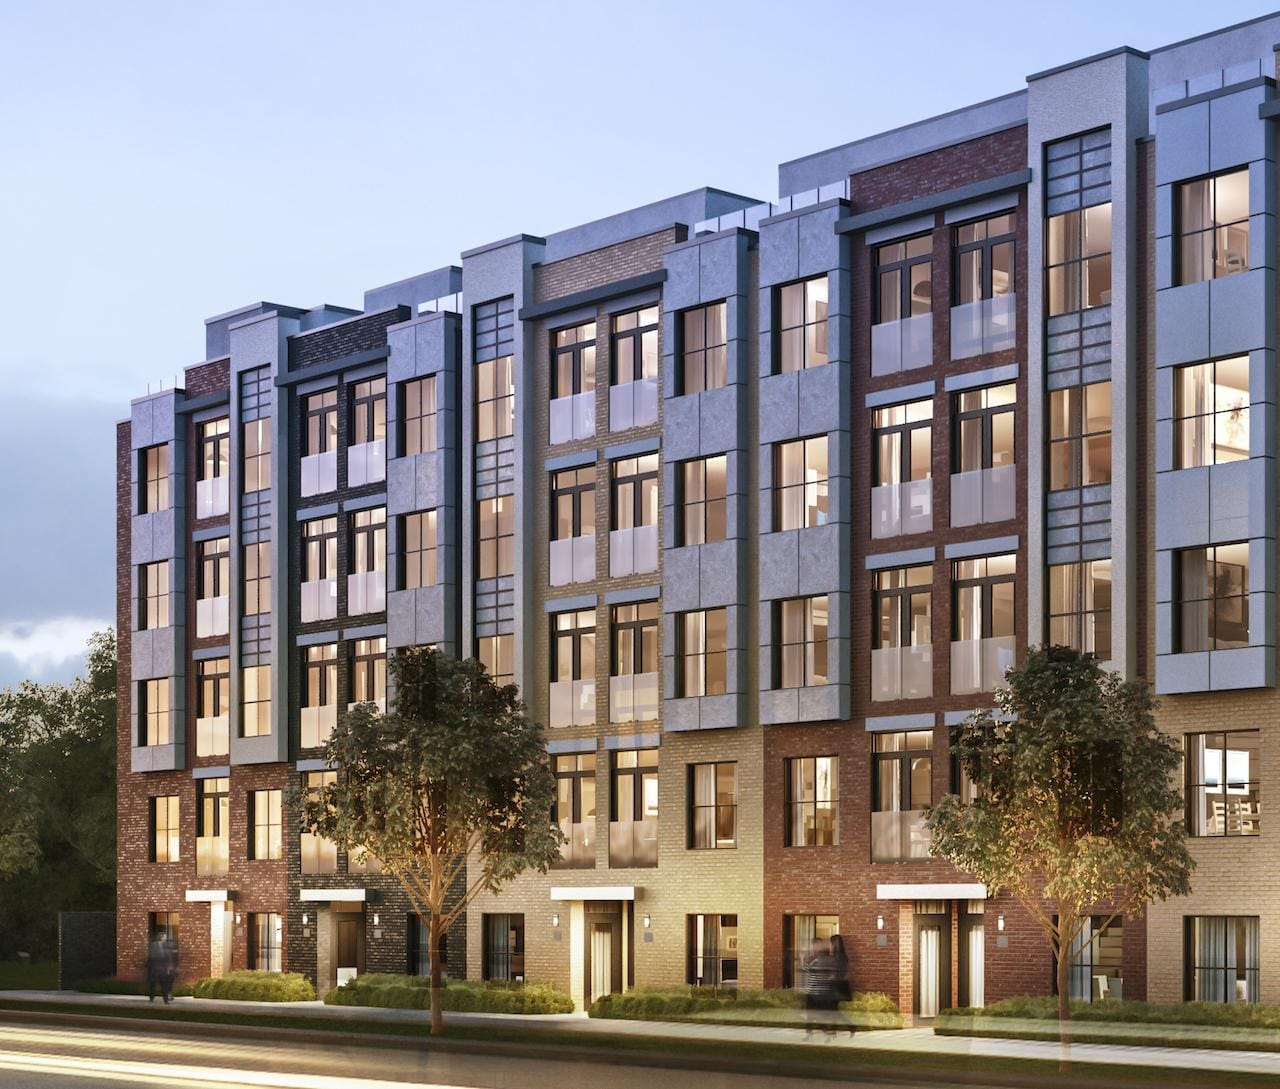 Exterior rendering of Clanton Park Towns with street view in the evening.